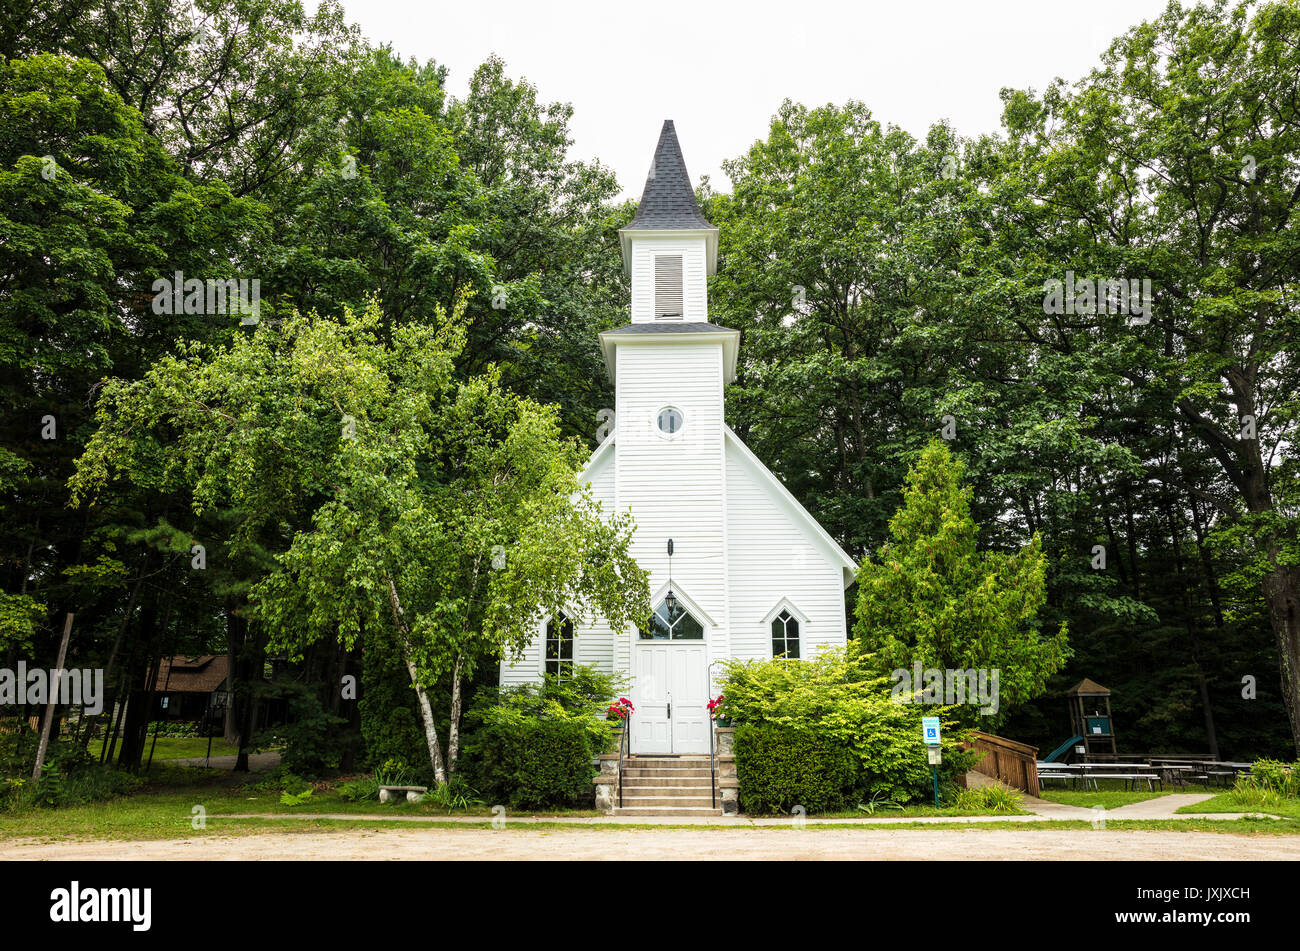 Old Mission Congregational Church on Old Mission Peninsula near Traverse City, Michigan, USA Stock Photo